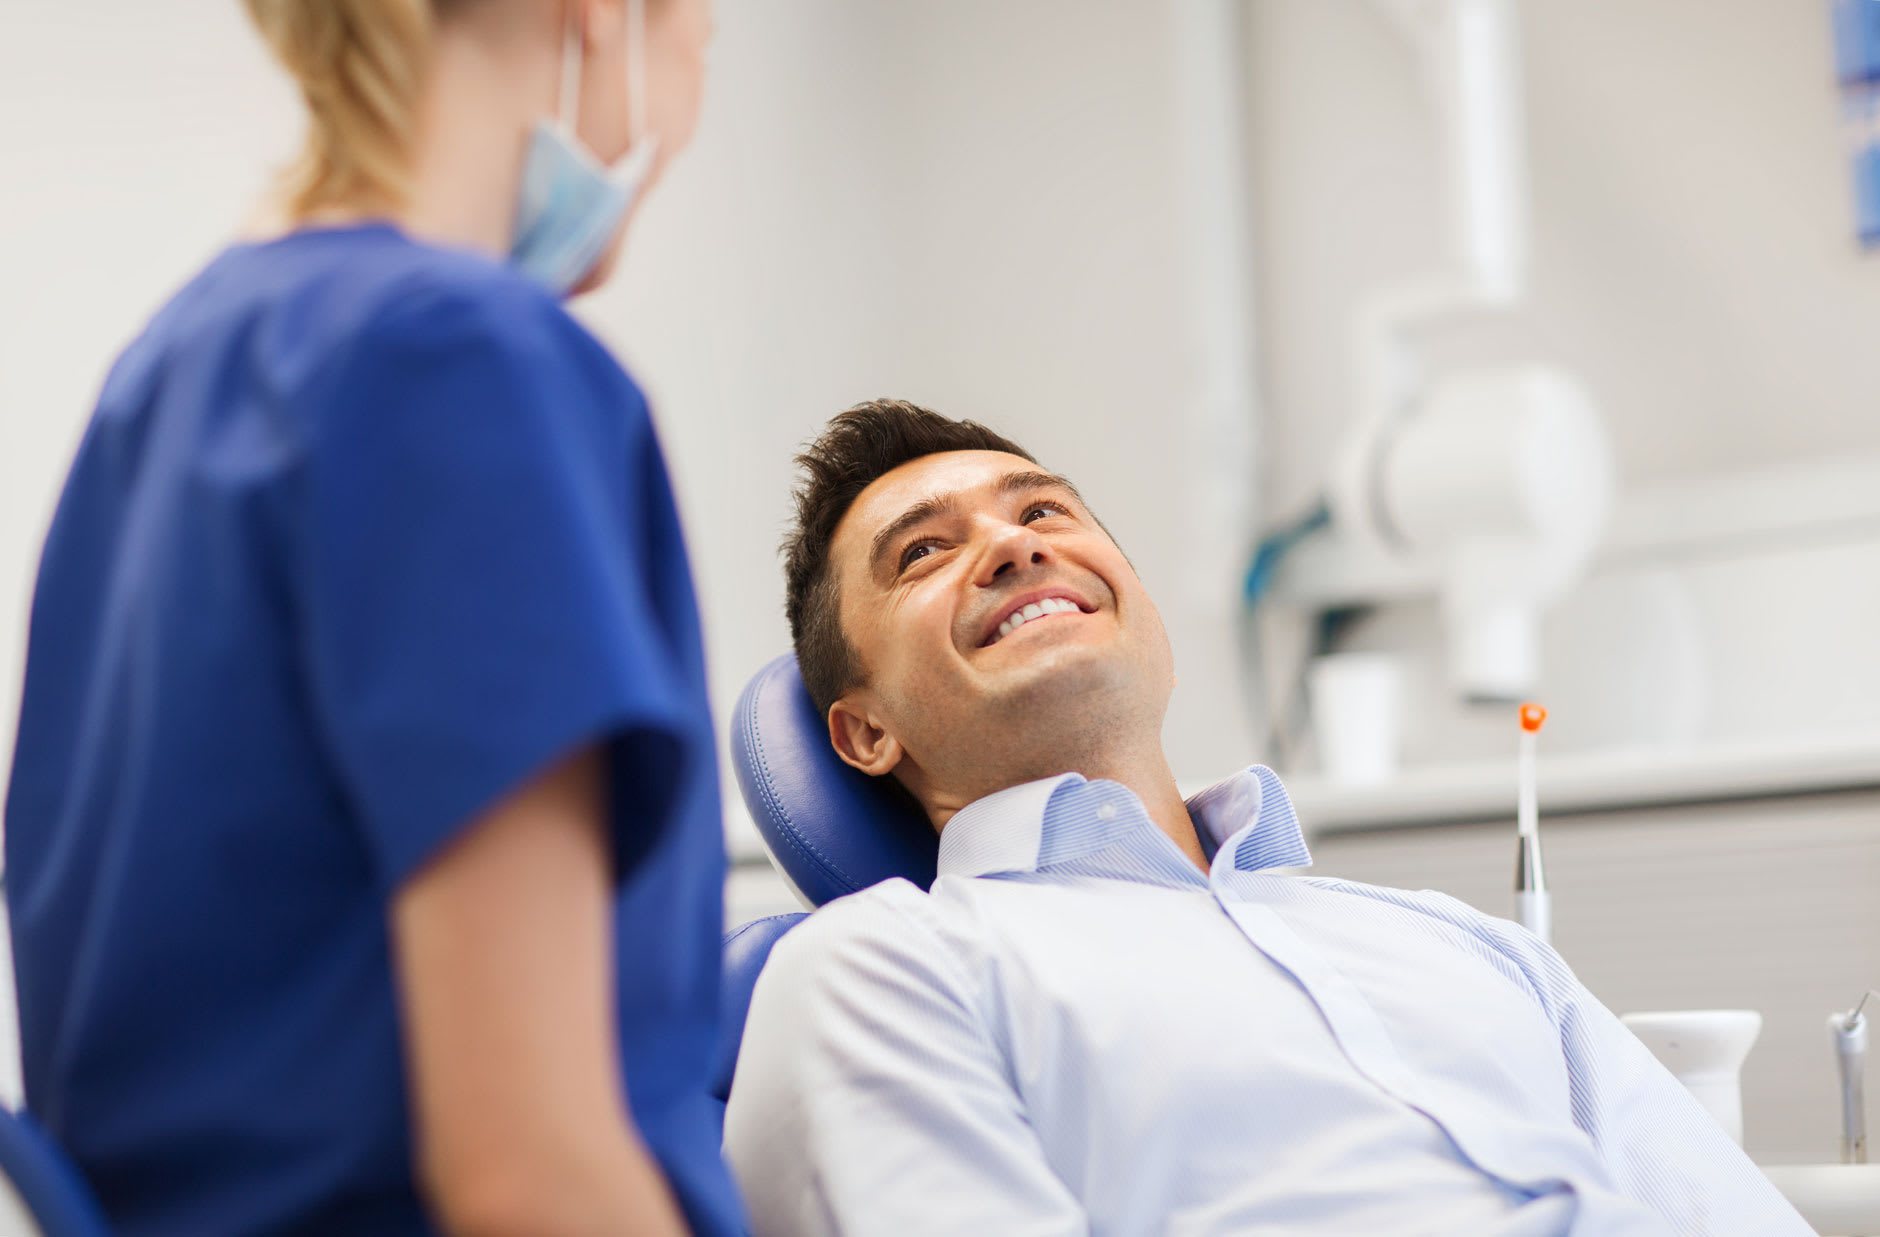 A man in his 30s is smiling in the dentist's chair during a check up as his dentist explains to him that Fixodent denture adhesive can help with how to get rid of denture sores.